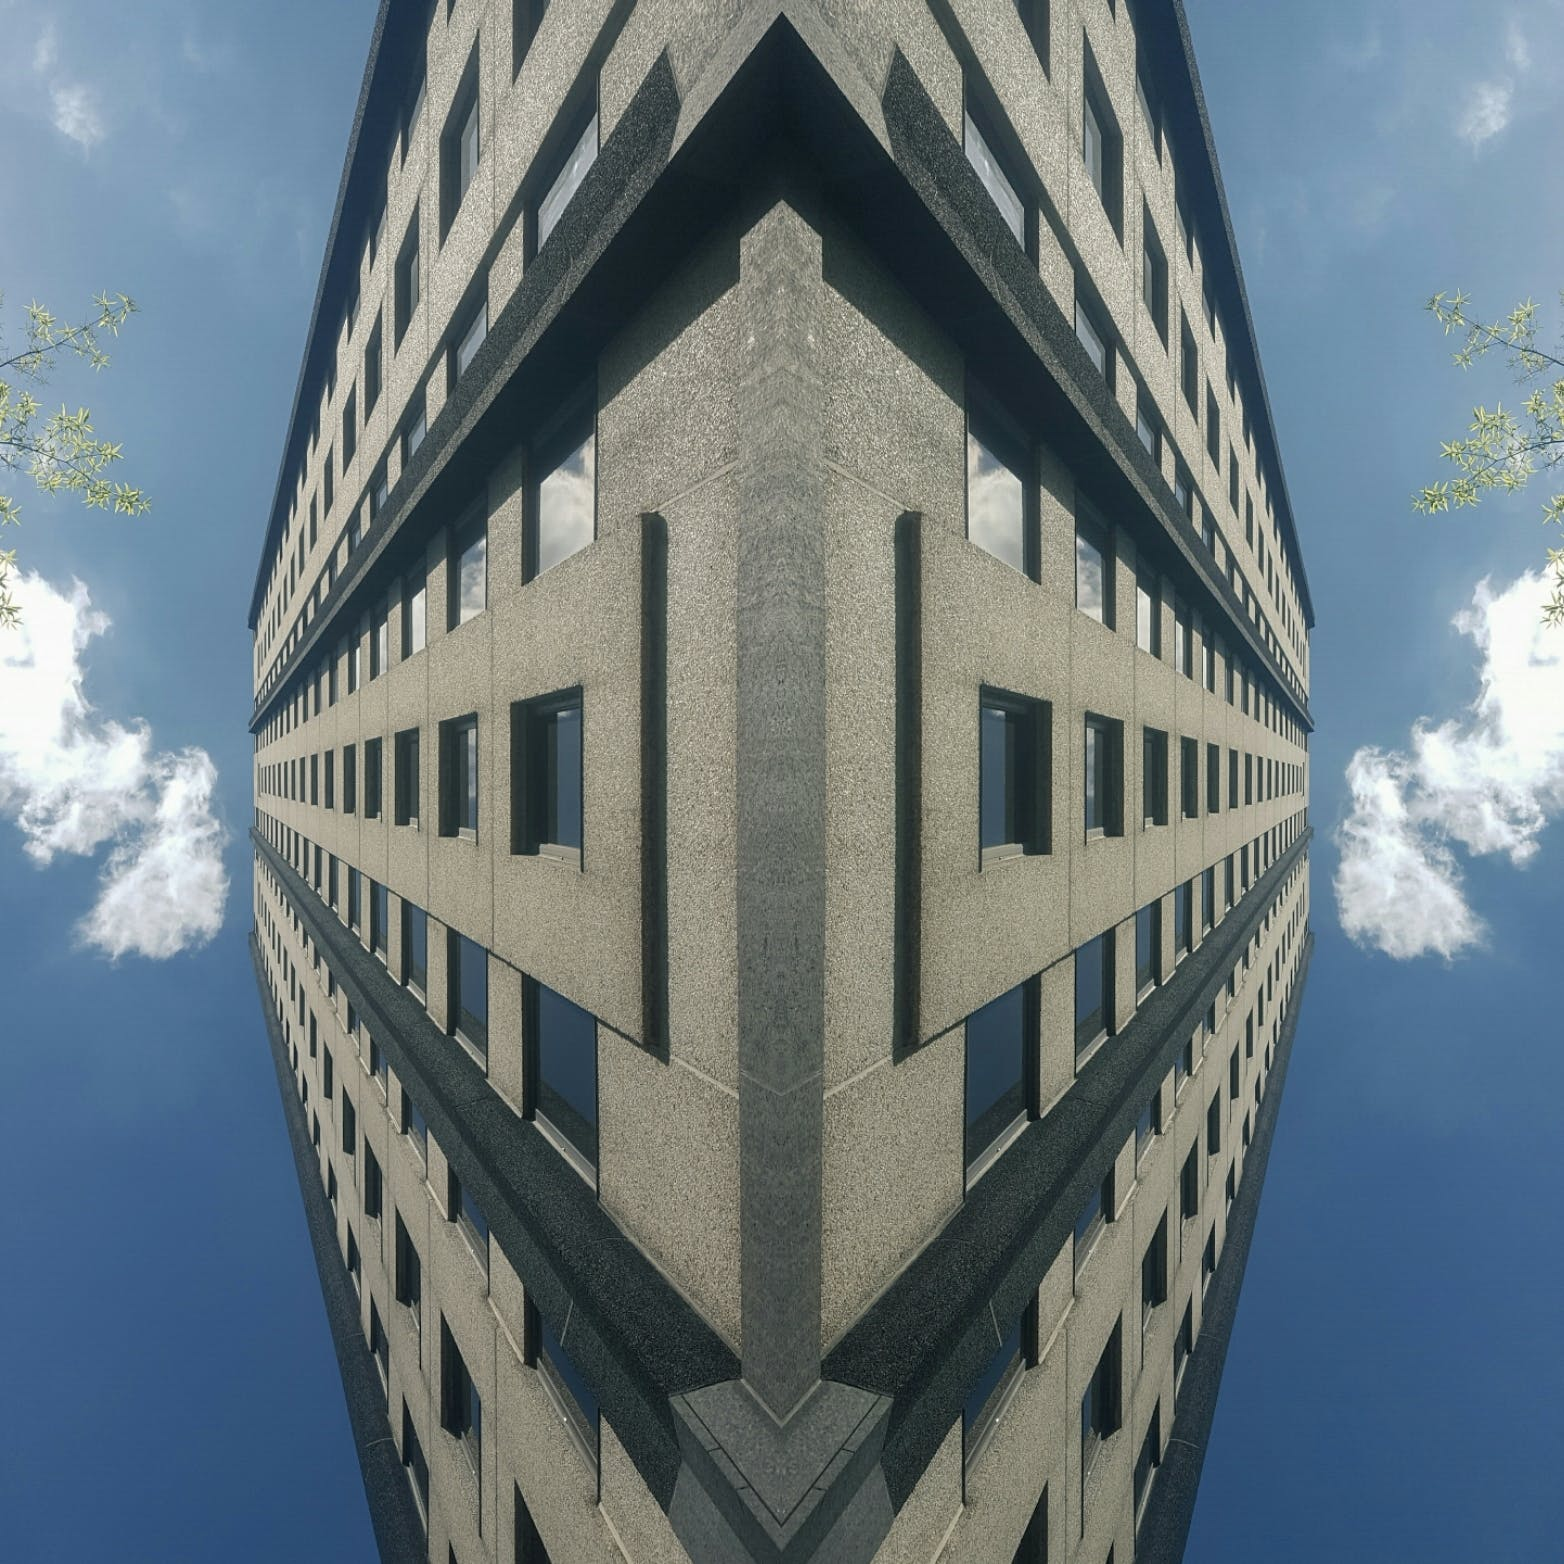 Free stock photo of sky, clouds, street, building